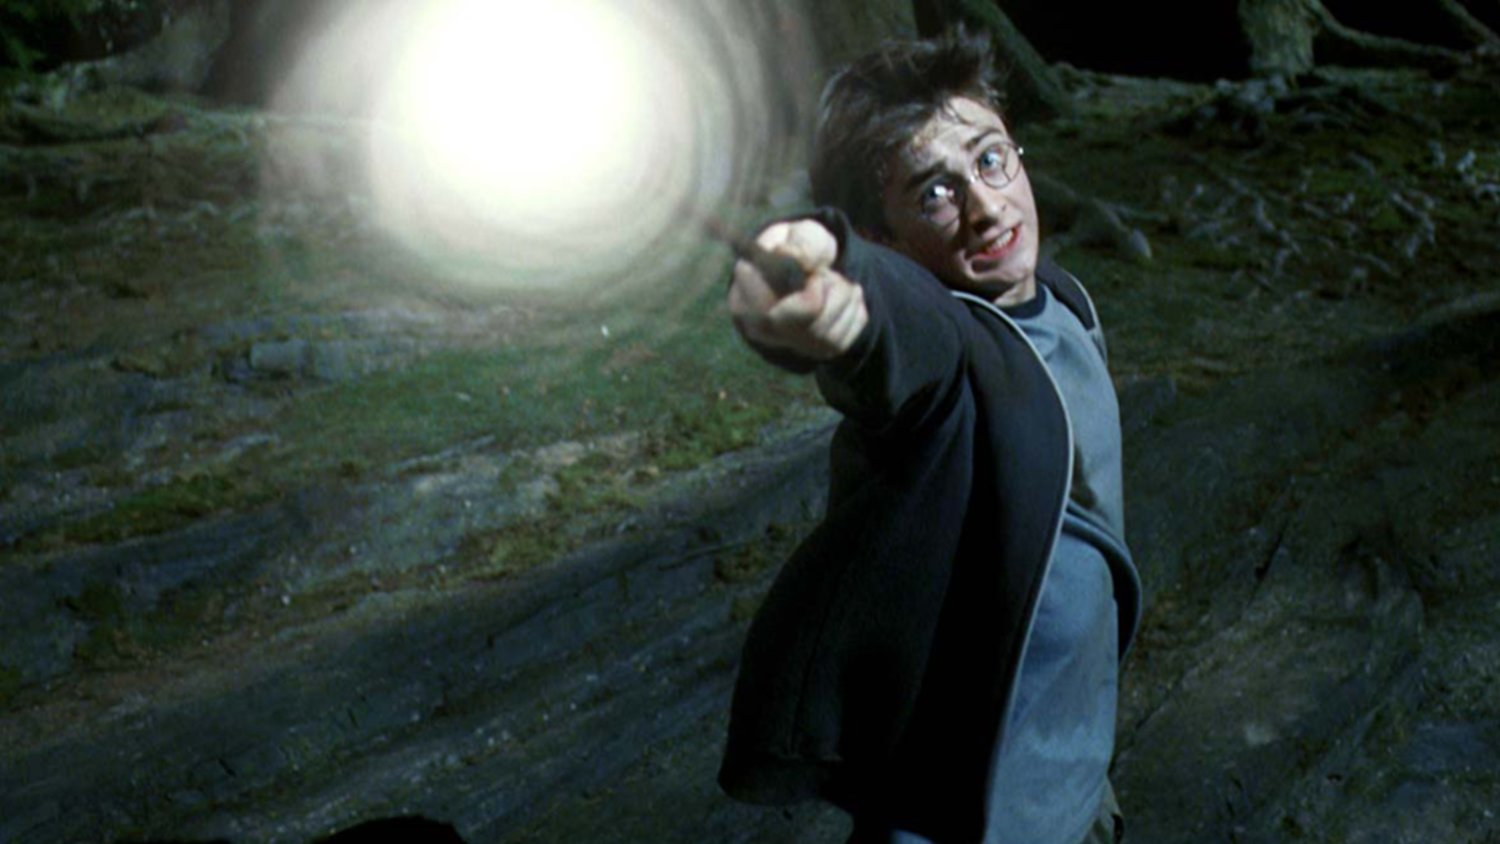 Video Lists 101 Interesting Facts About the HARRY POTTER Franchise